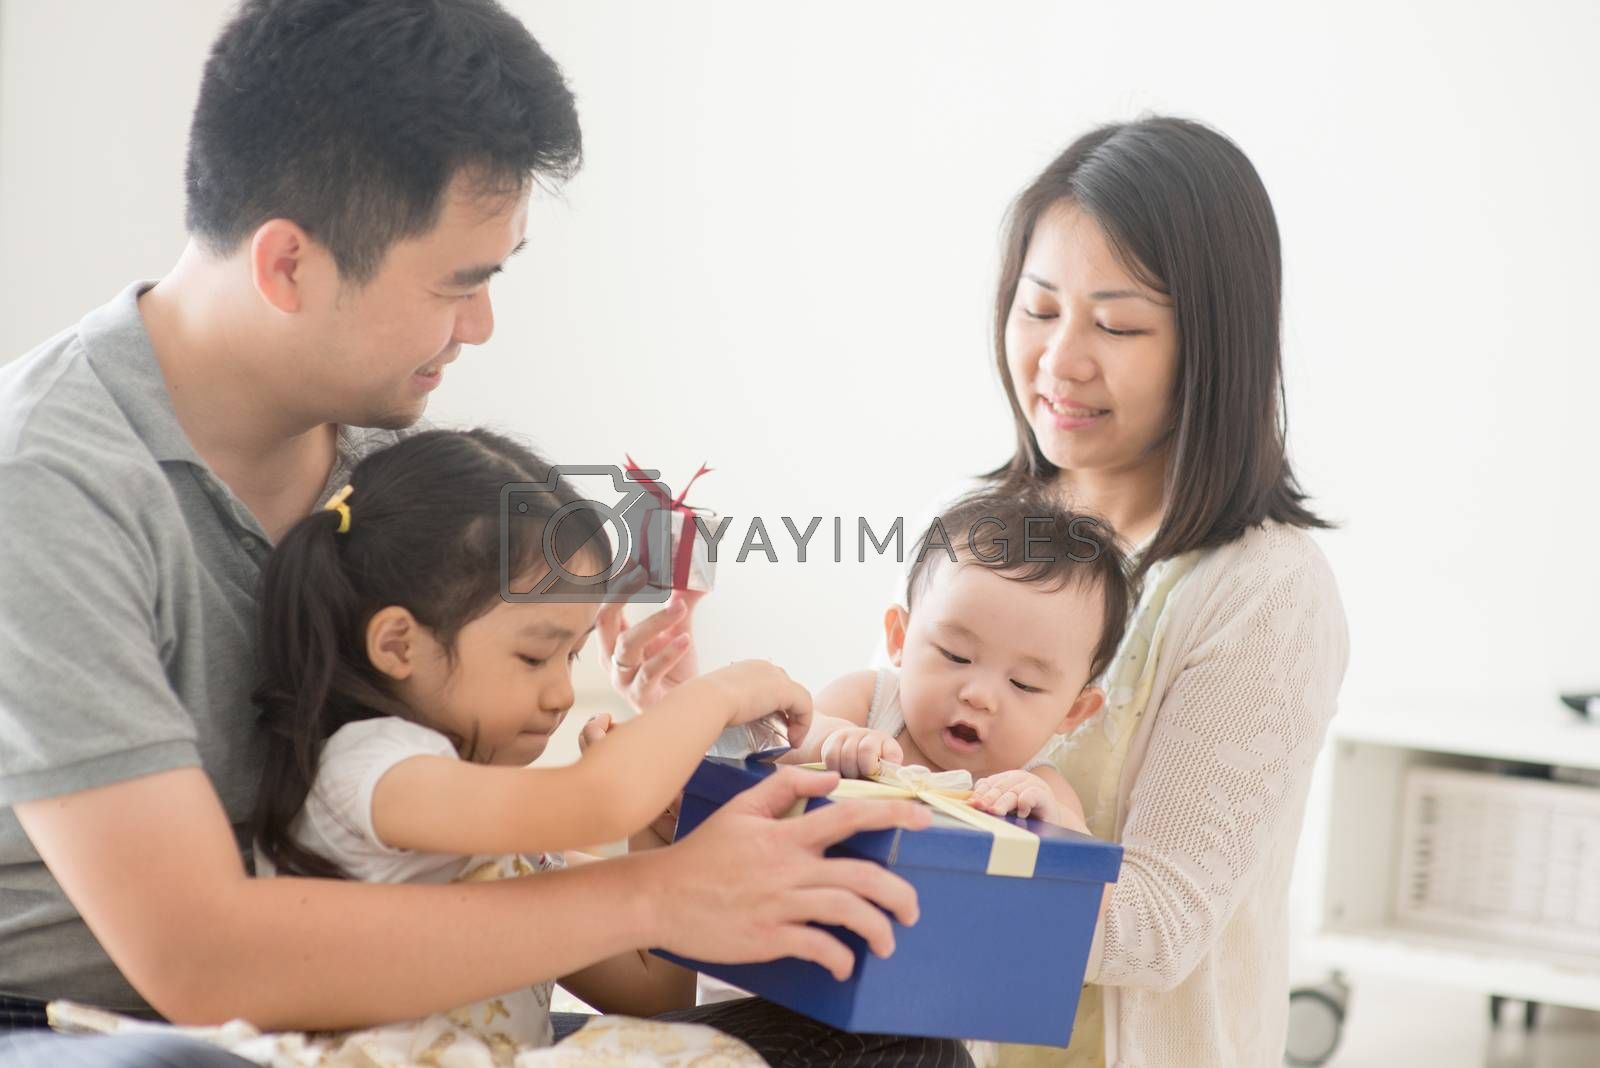 Parents and children boxing together. Asian family spending quality time at home, natural living lifestyle indoors.